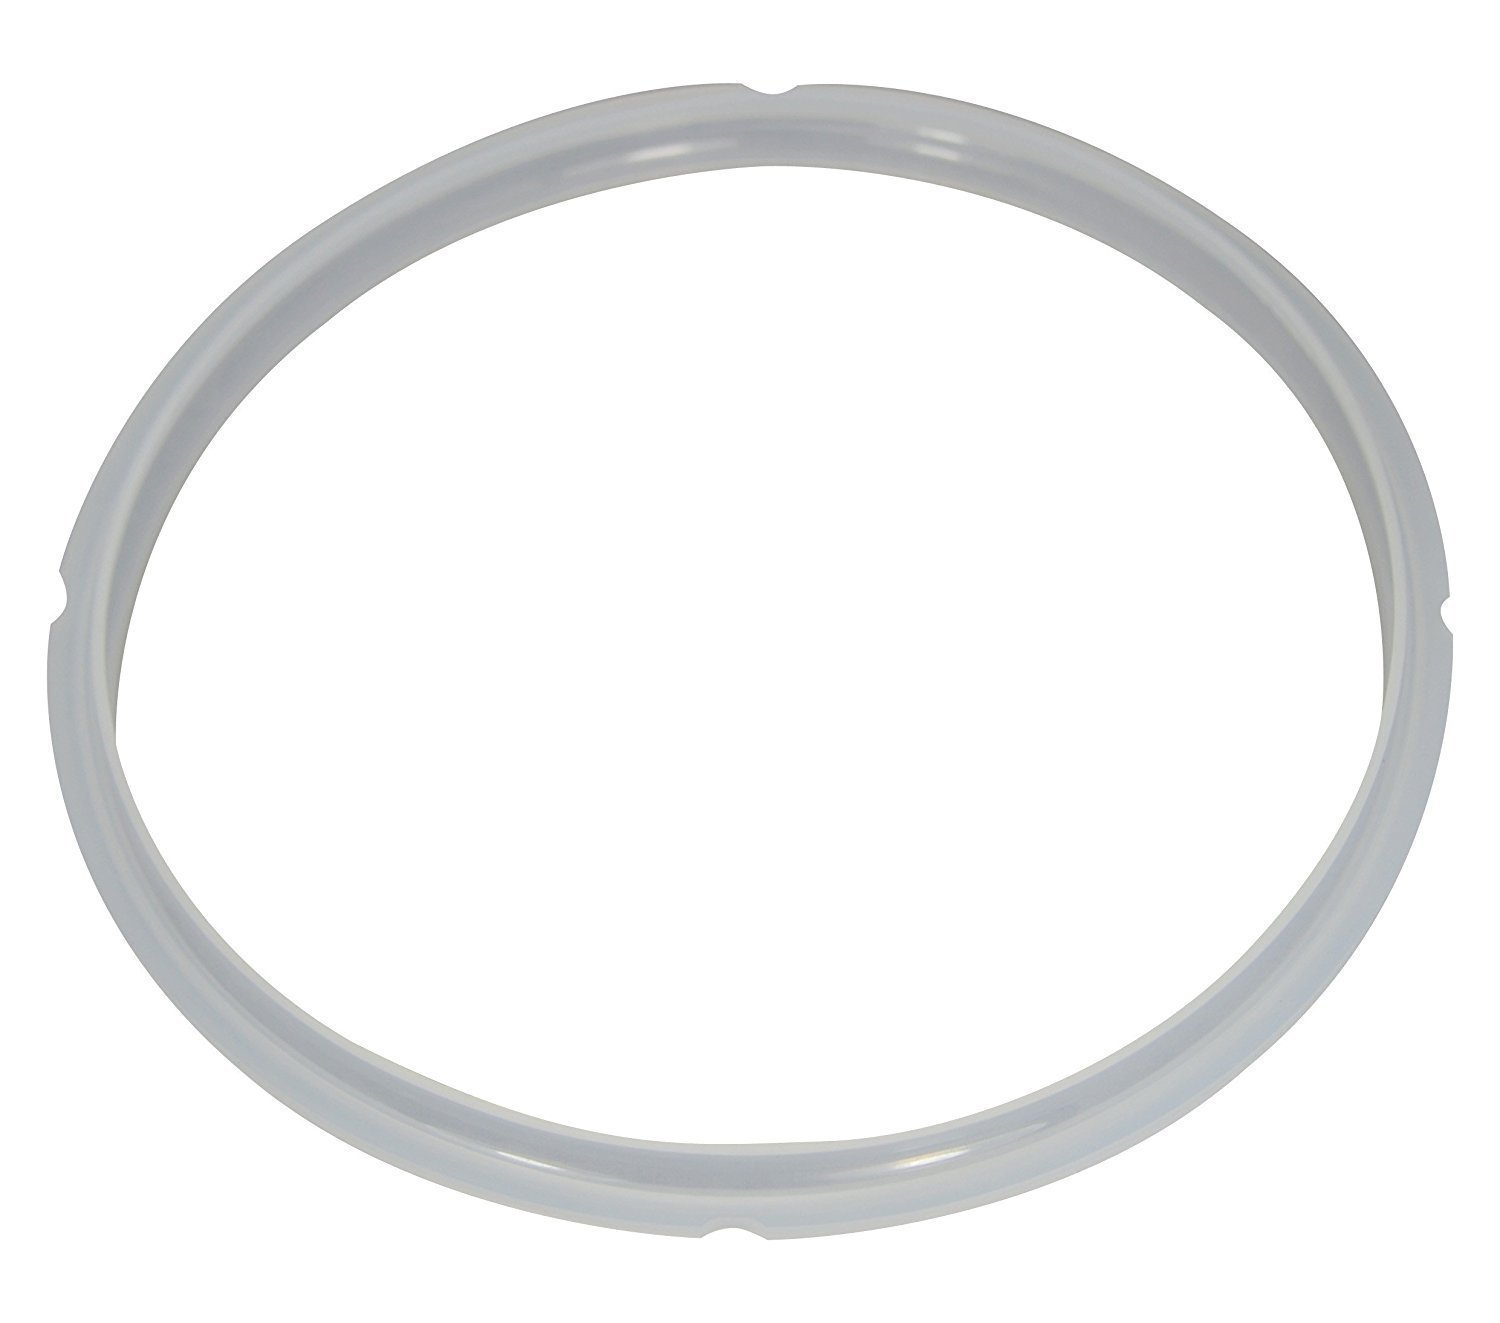 Rubber Seal Ring For Elite Platinum 8 Quart Electric Pressure Cooker Model: EPC-808SS and EPC-808(A-Z) by GJS Gourmet (Image #1)